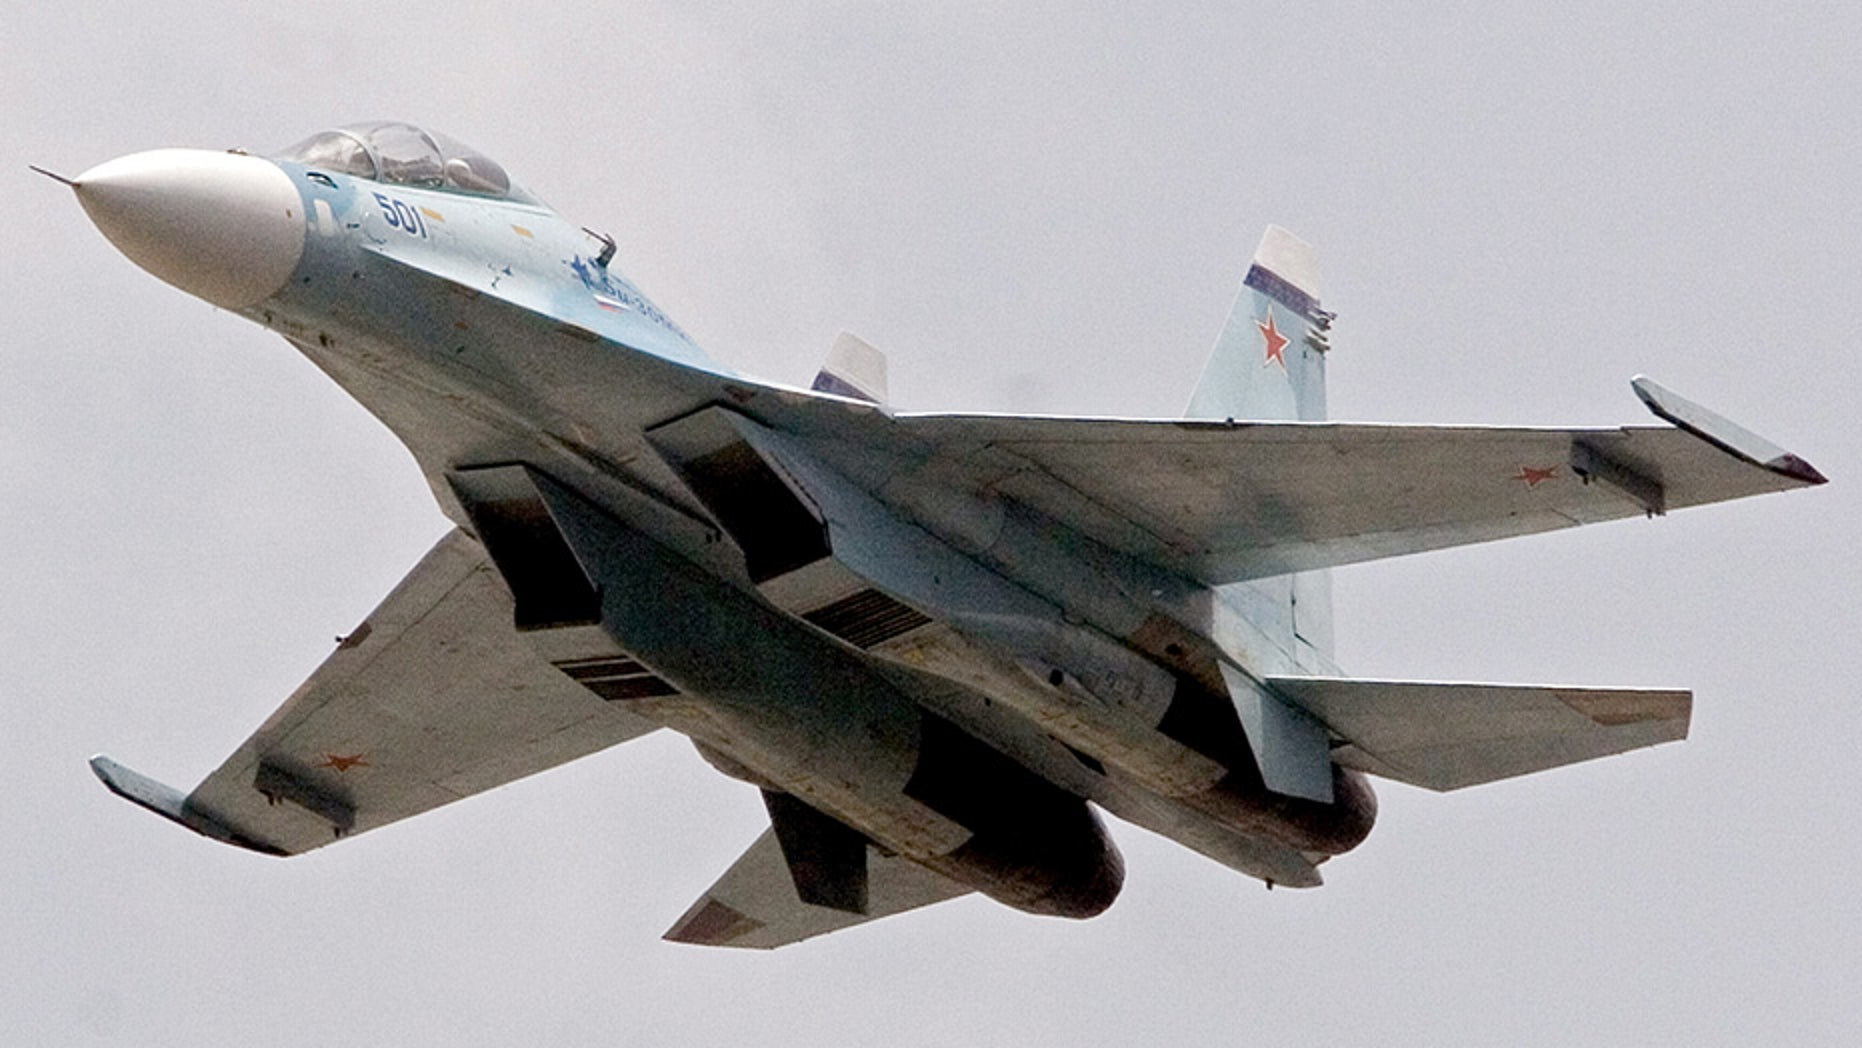 A Russian Sukhoi Su-30 fighter jet, similar to the one above, crashed in Syria Thursday, leaving 2 pilots dead.